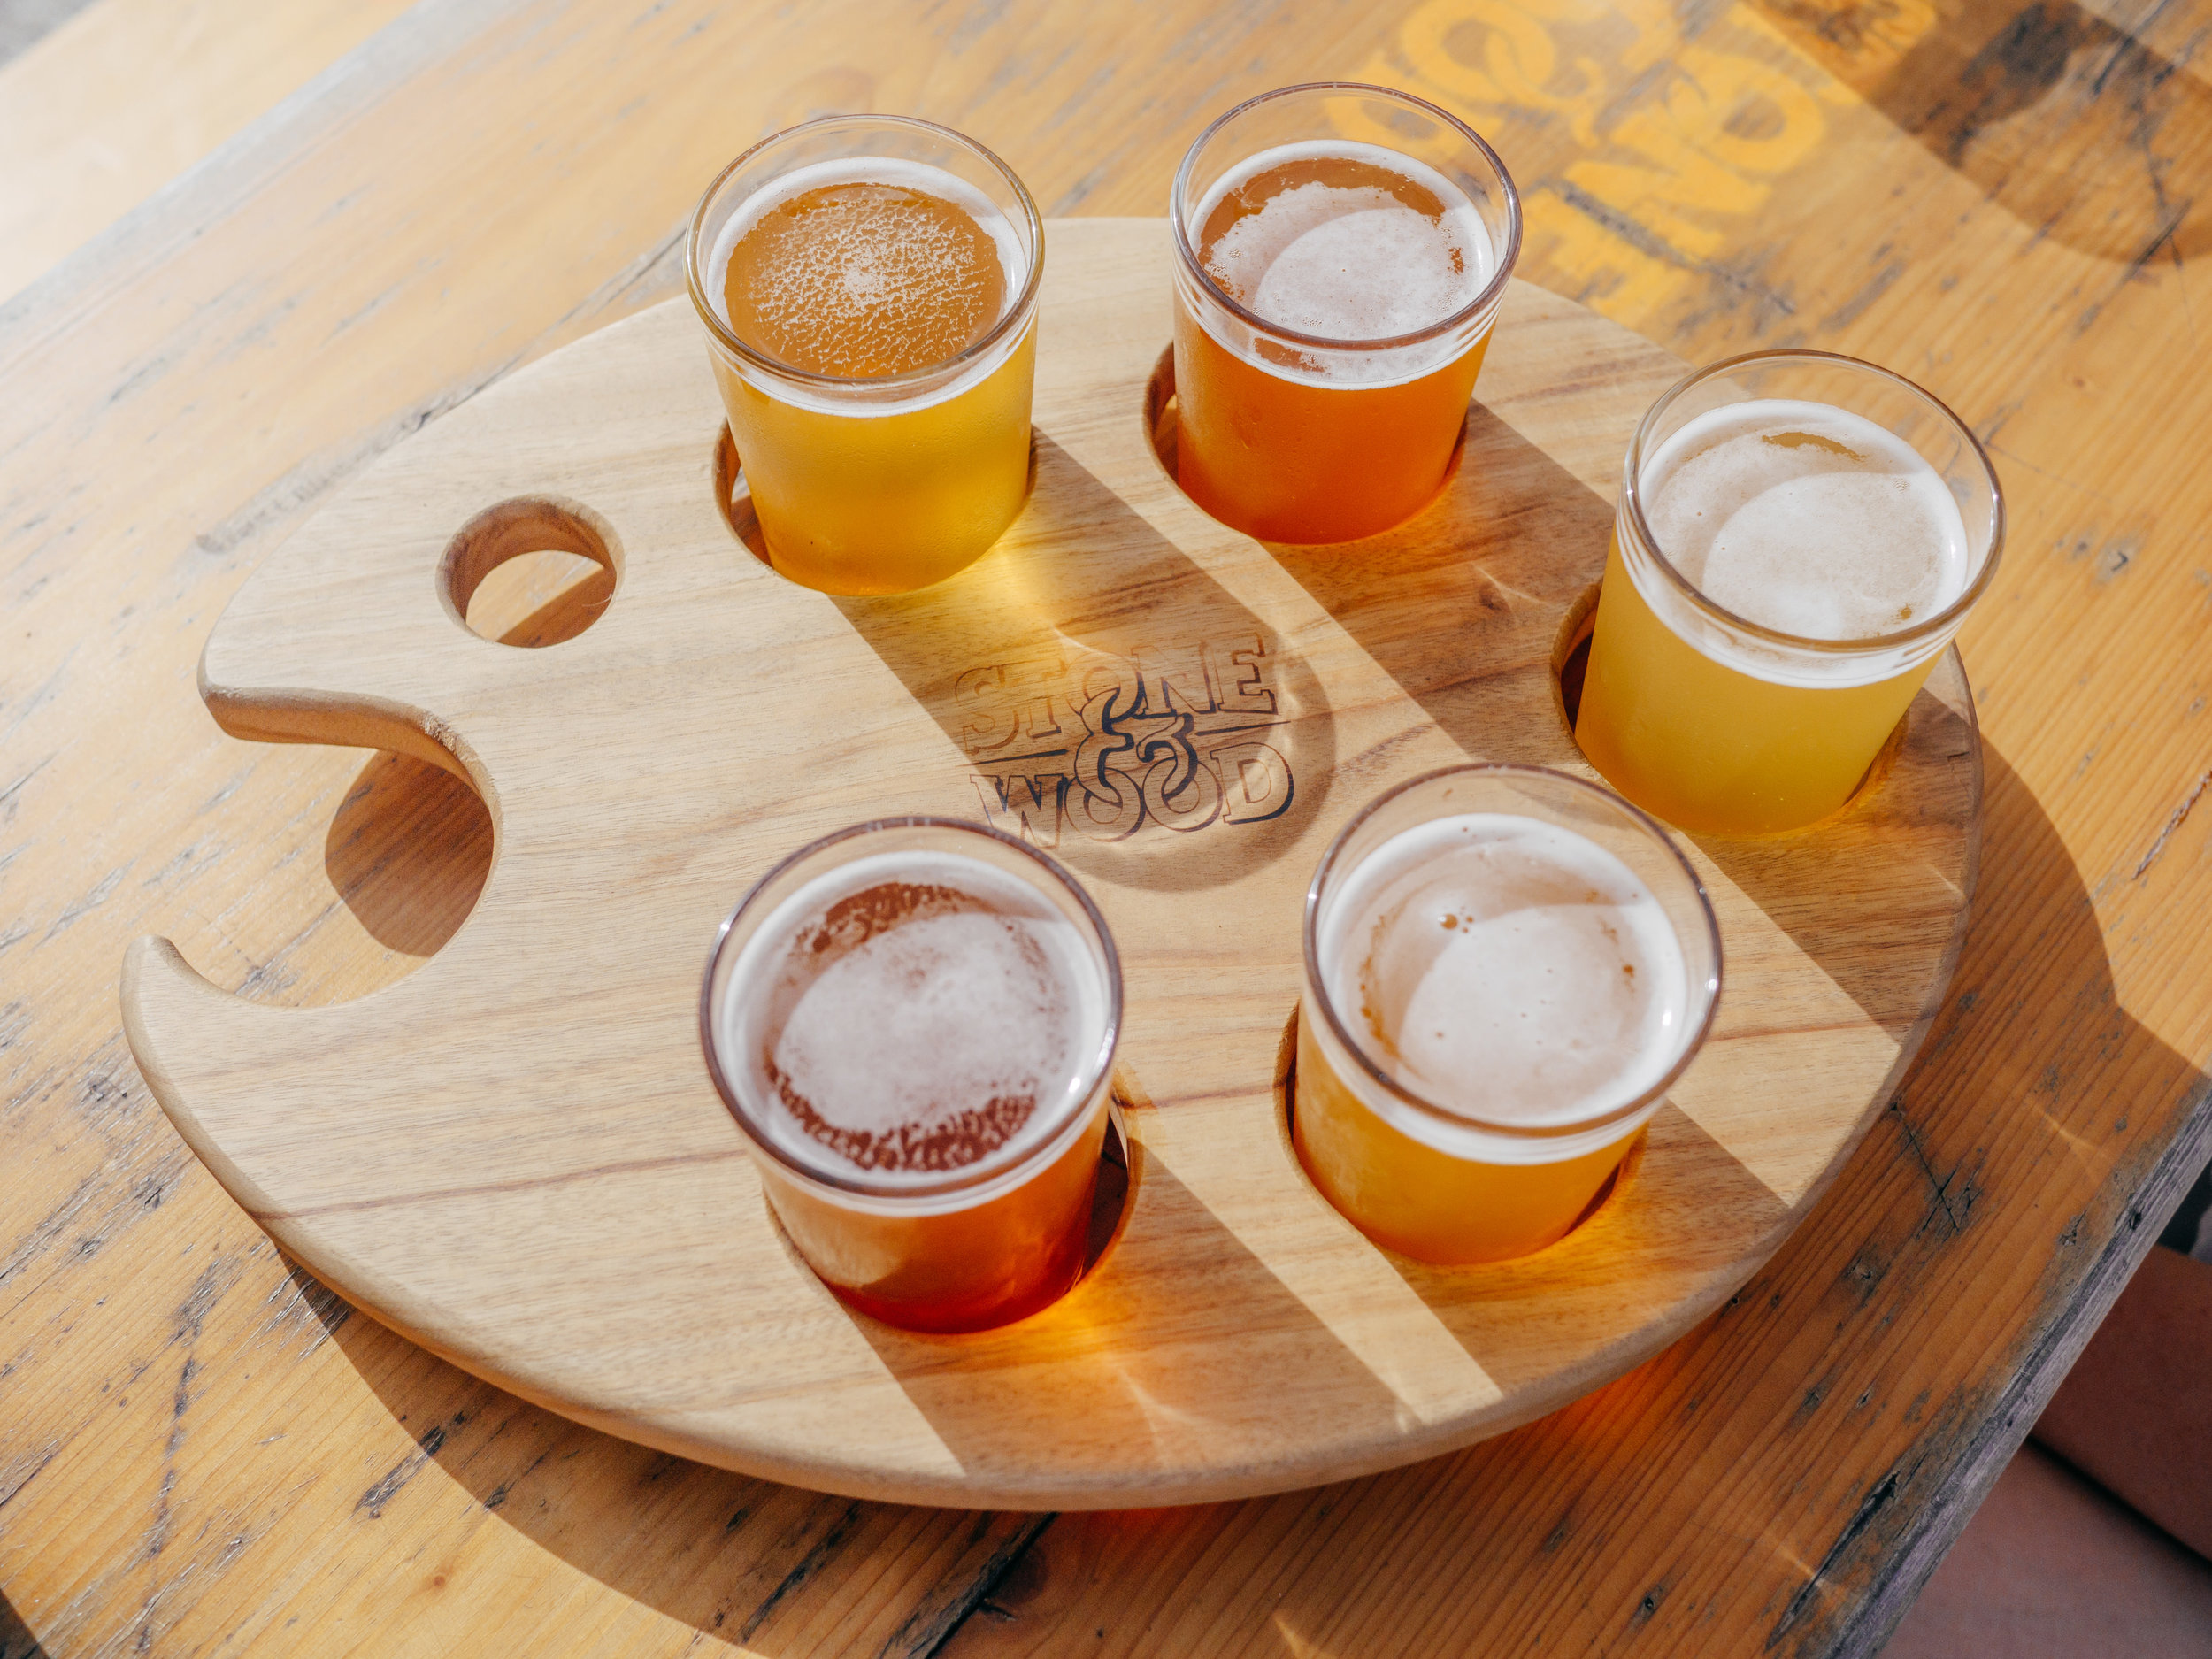 Flights with Flights - Flight training and local craft beer never tasted so good.